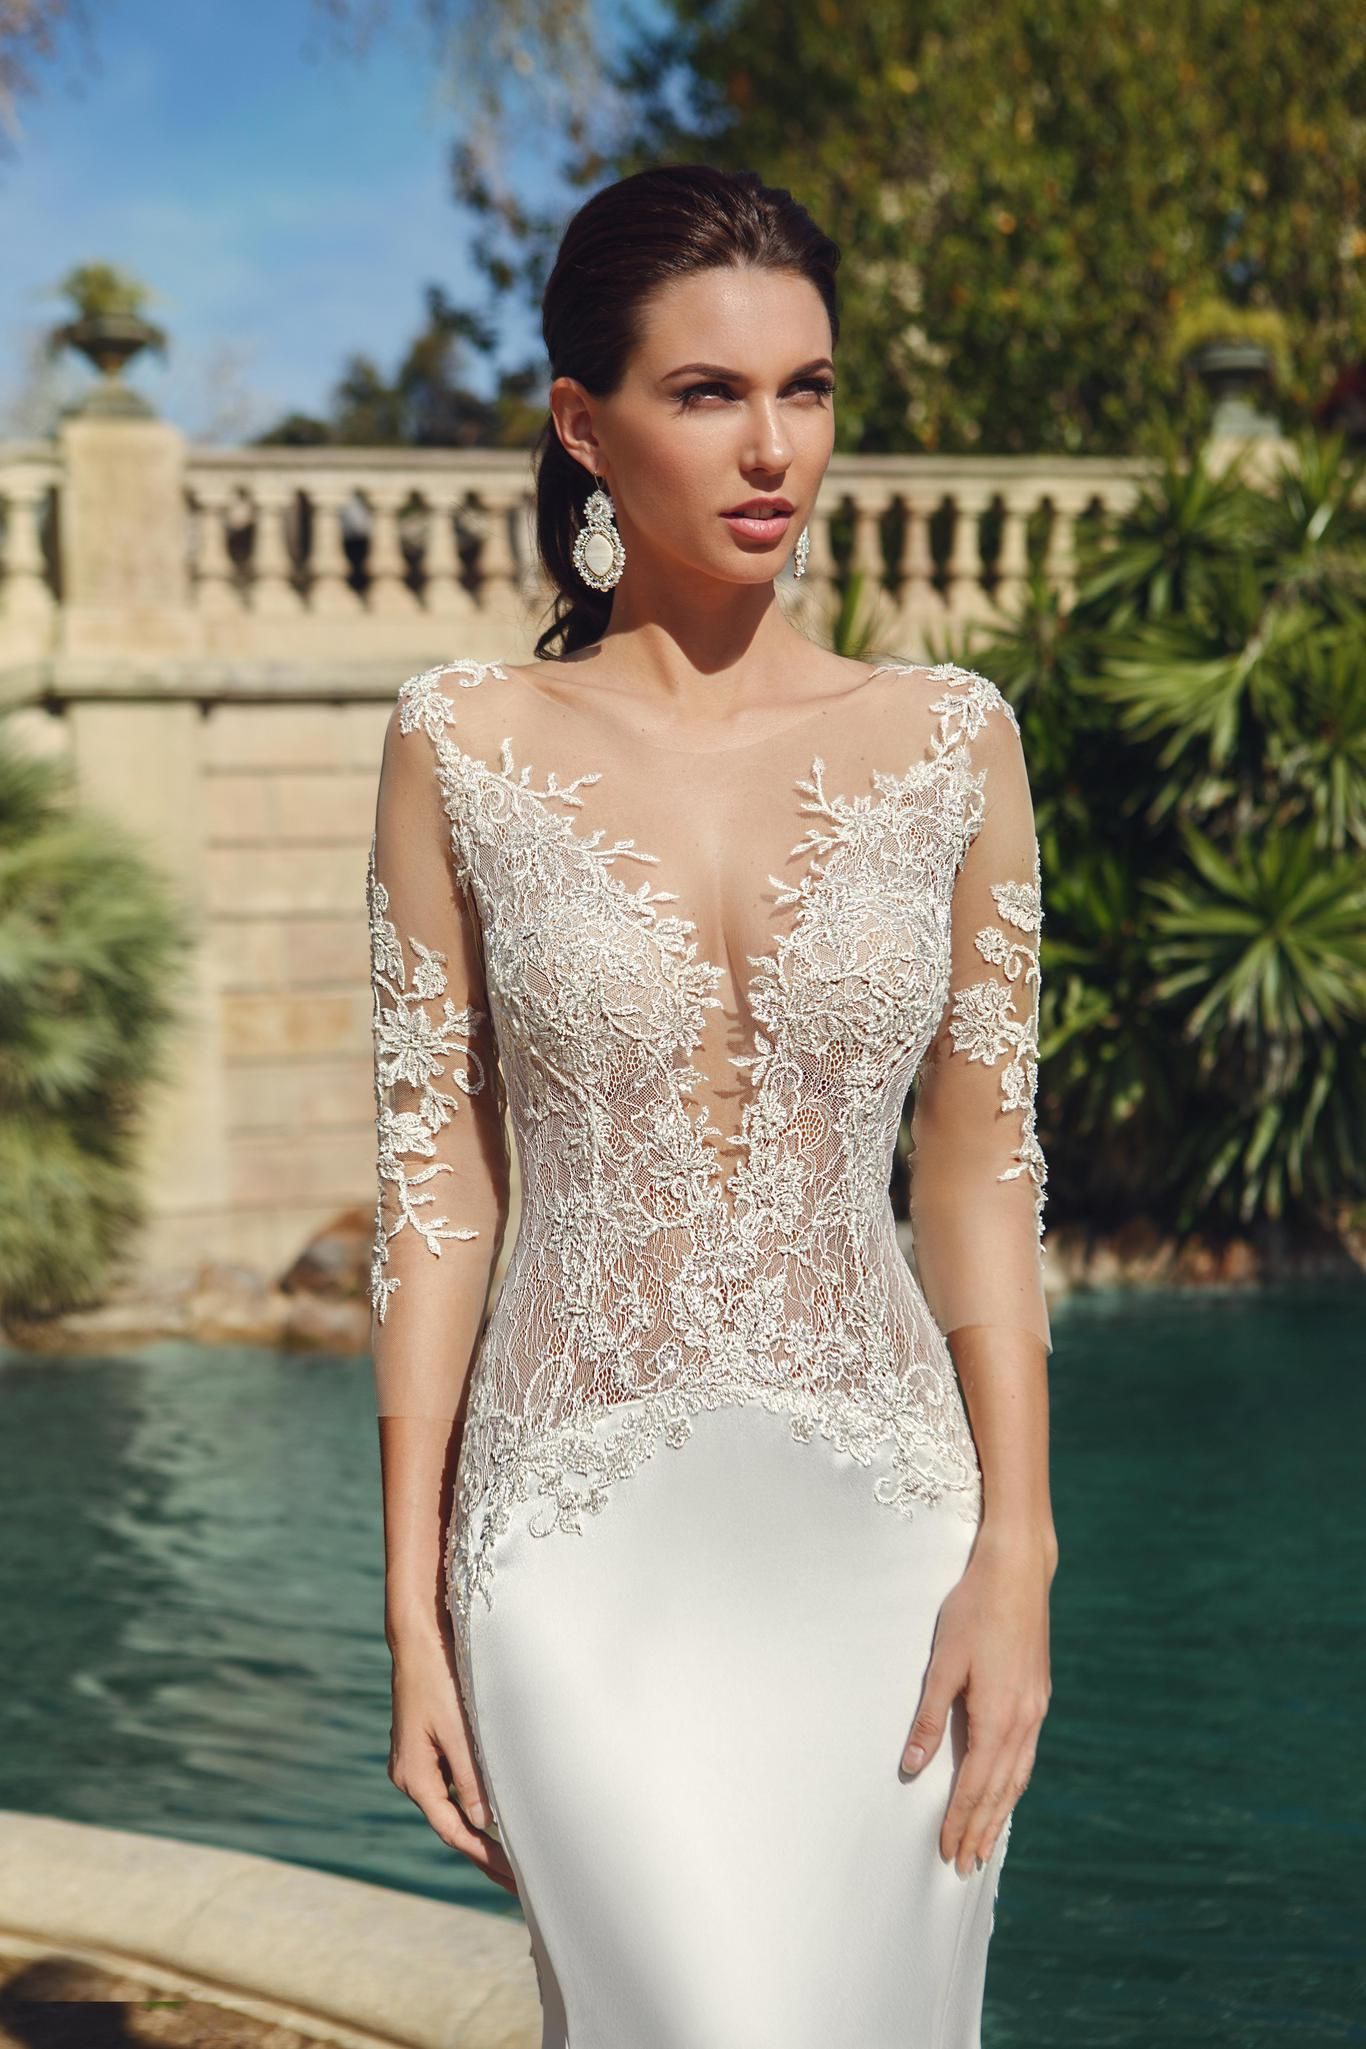 Ricca sposa hola barcelona collection nicole at the altar